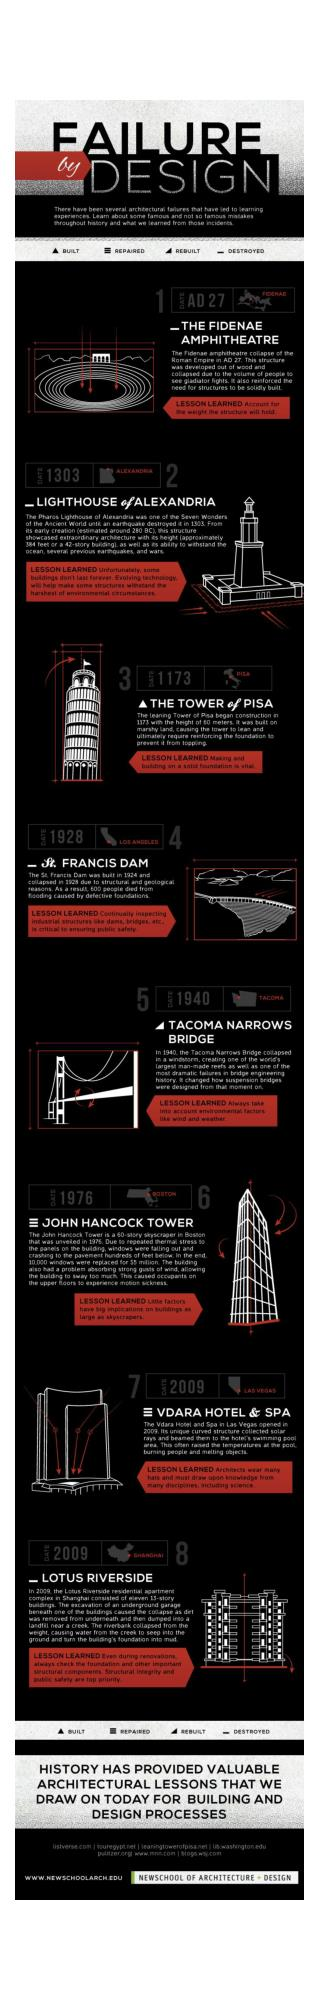 Failure by Design: An infographic about architectural blunders